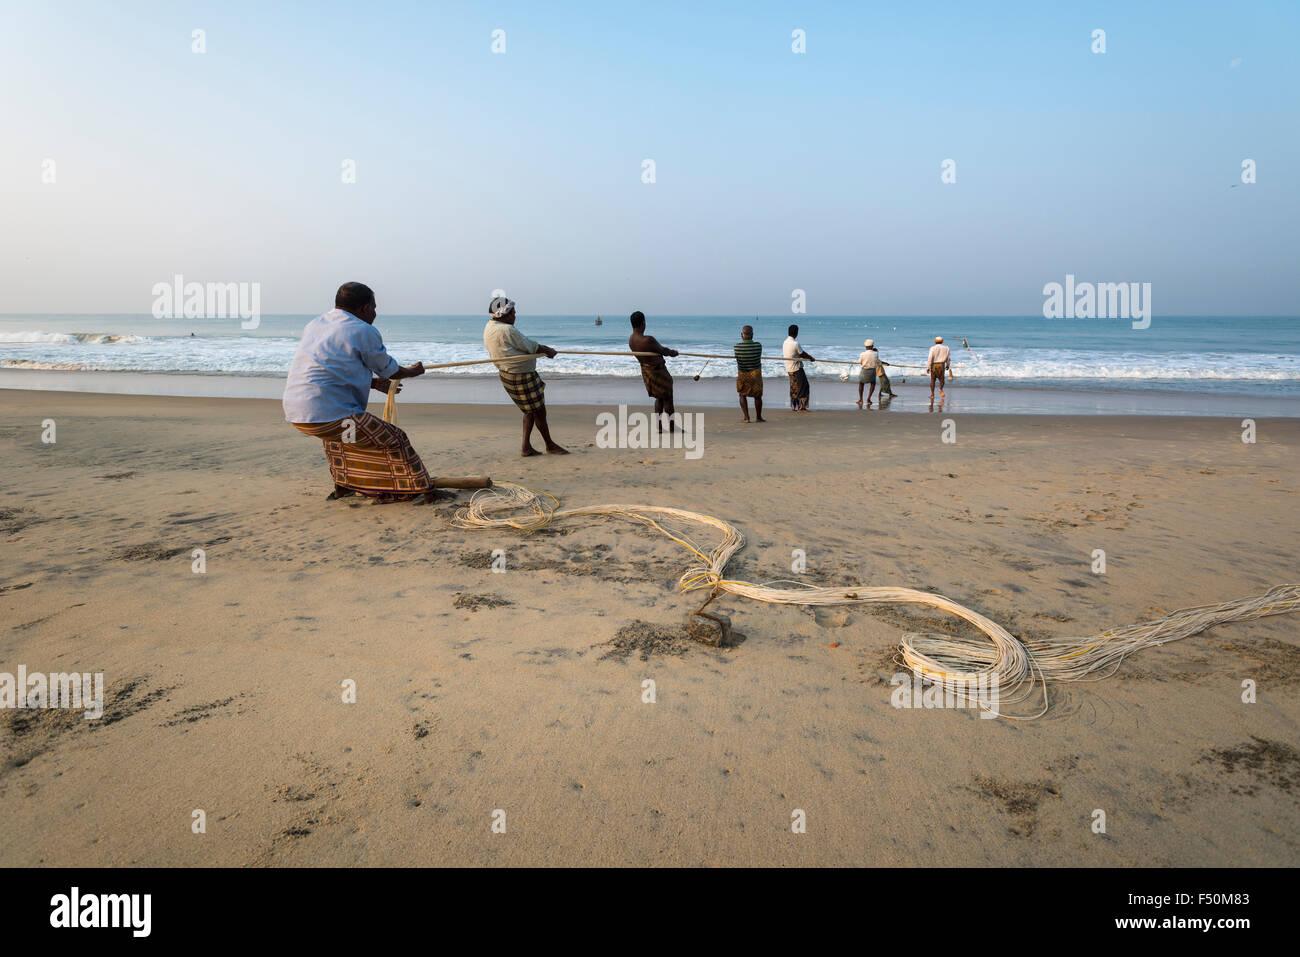 A group of fishermen is pulling out the fishing nets onto the beach - Stock Image